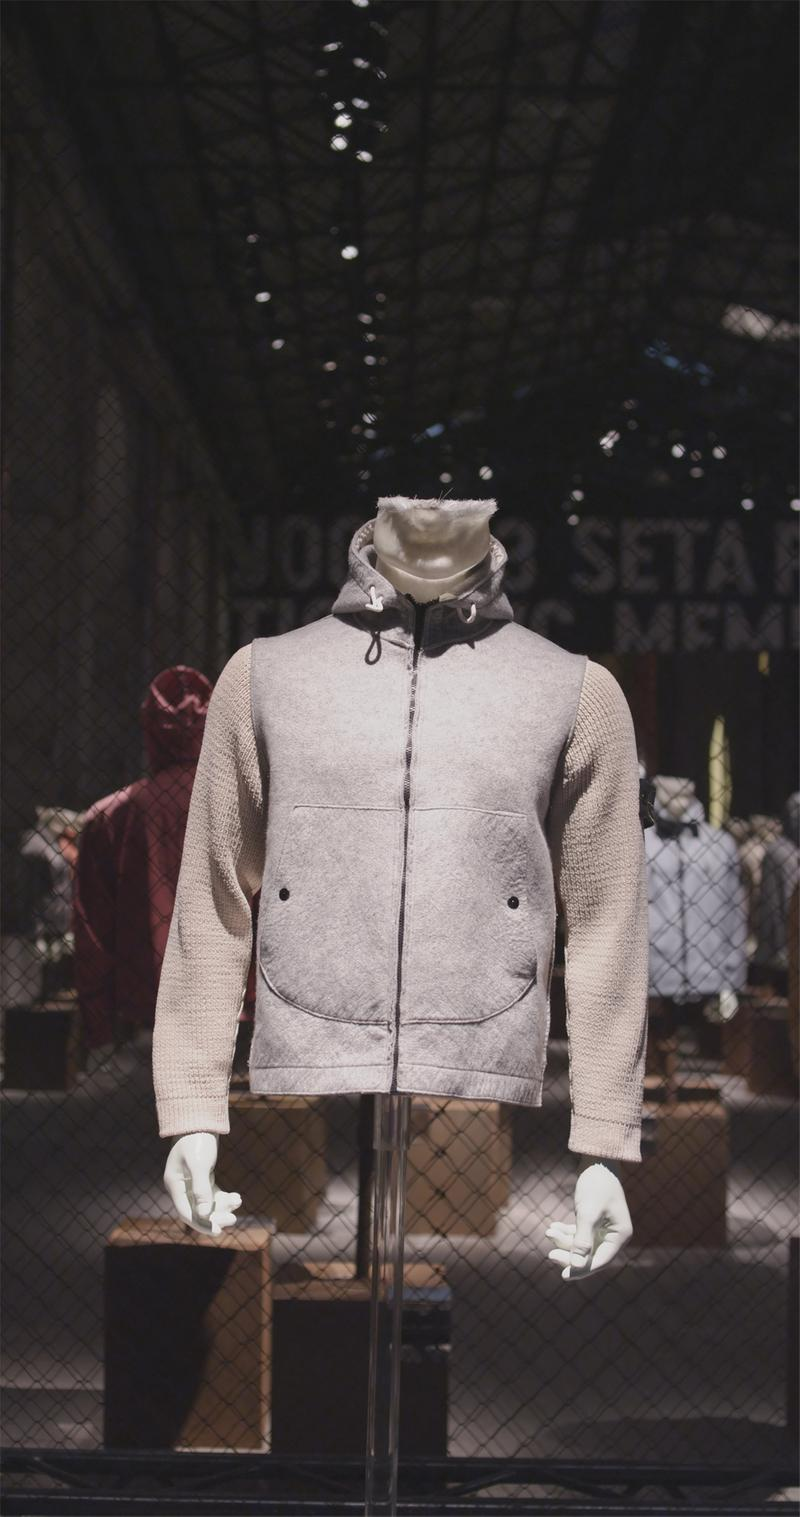 Gray zip up sweater with high drawstring collar and contrasting sleeves displayed on mannequin bust